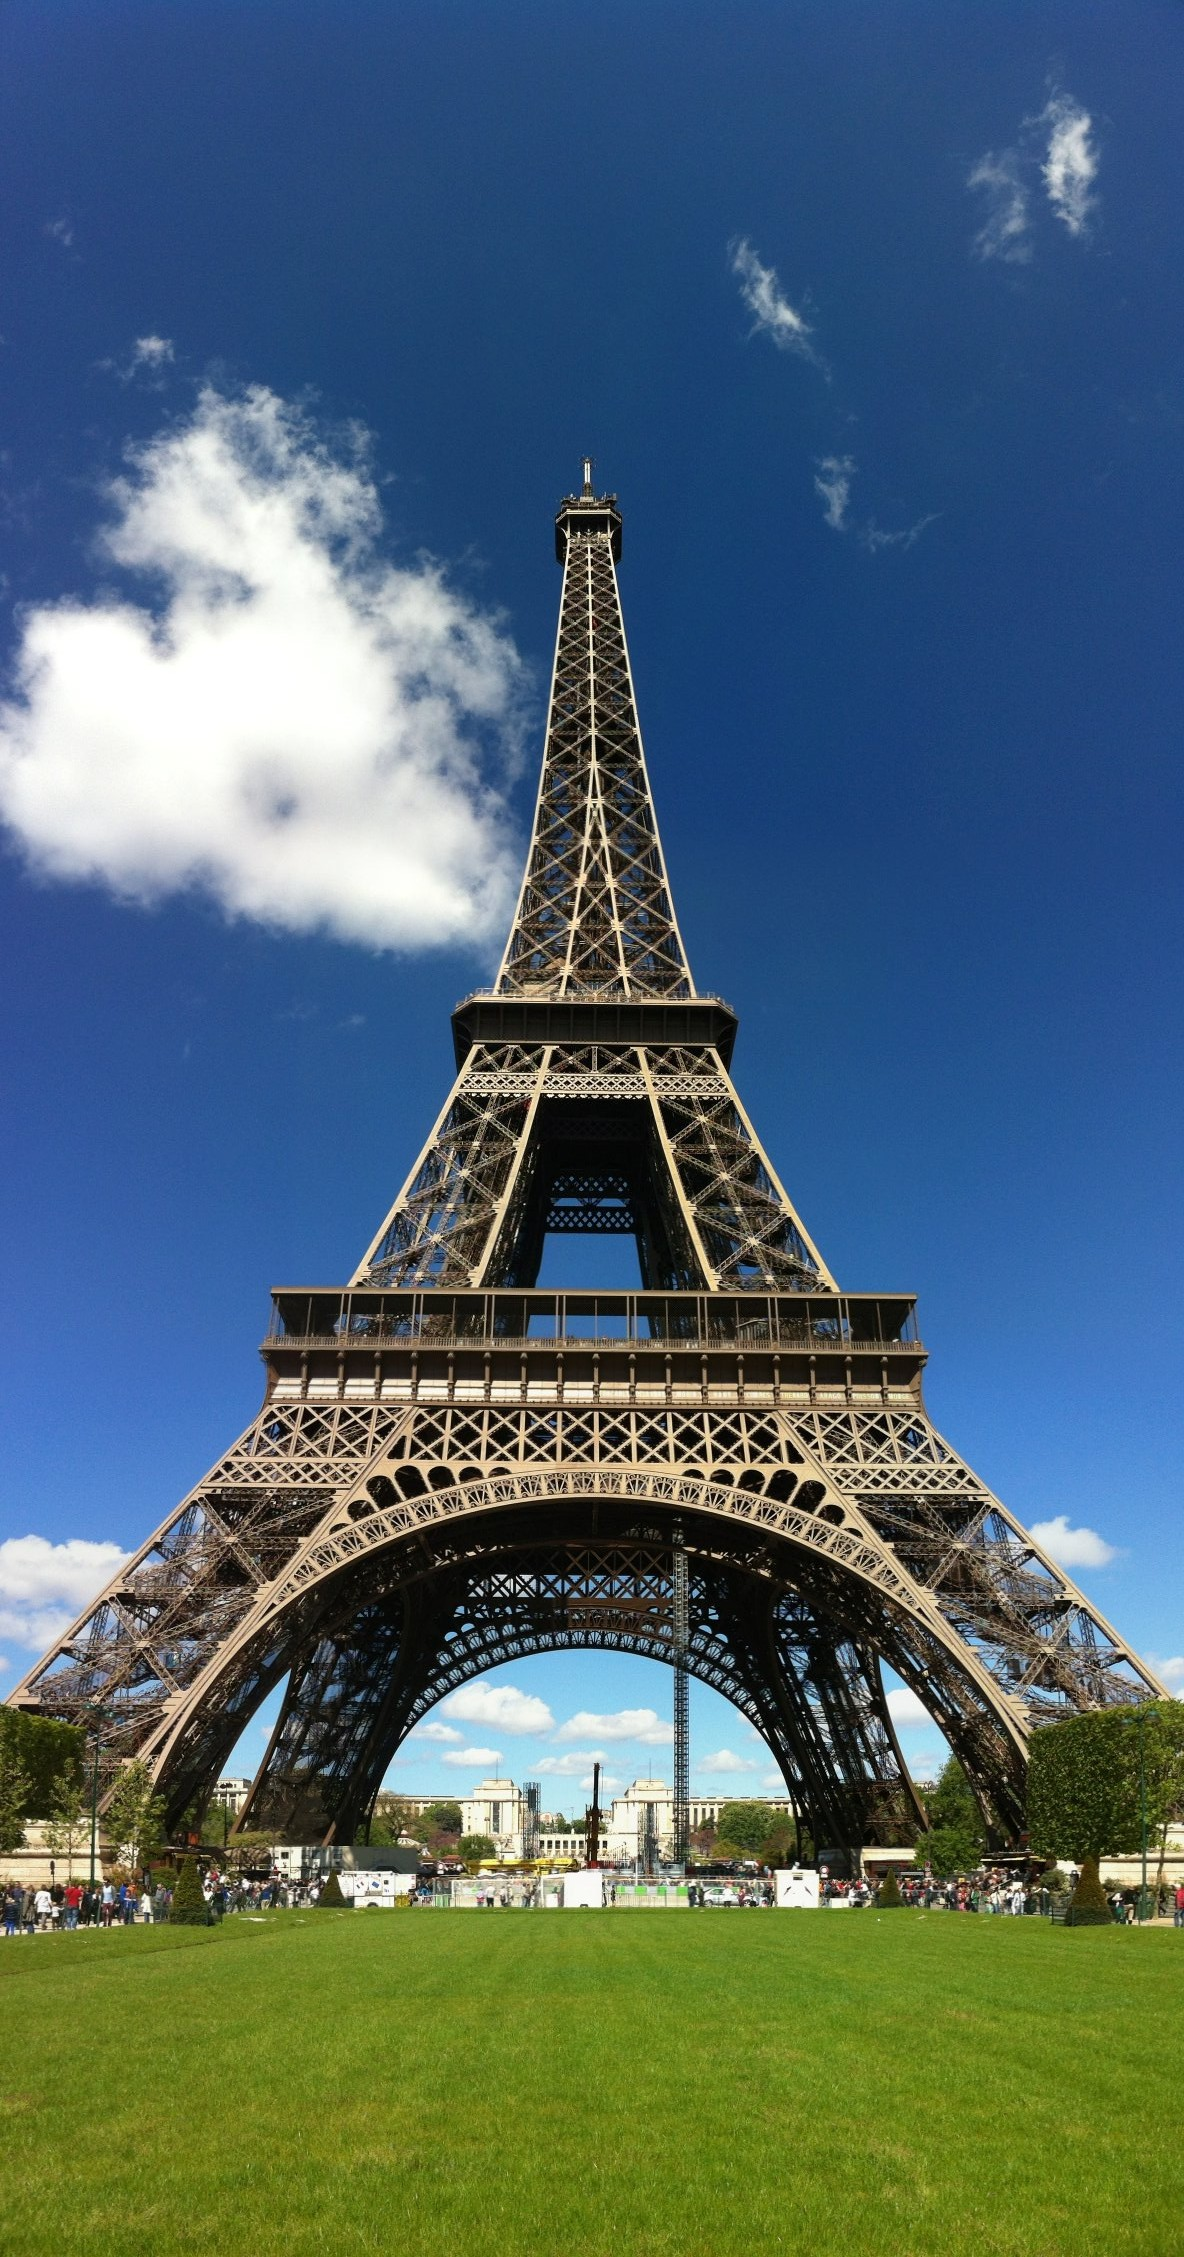 the eiffel tower images the eiffel tower hd wallpaper and background